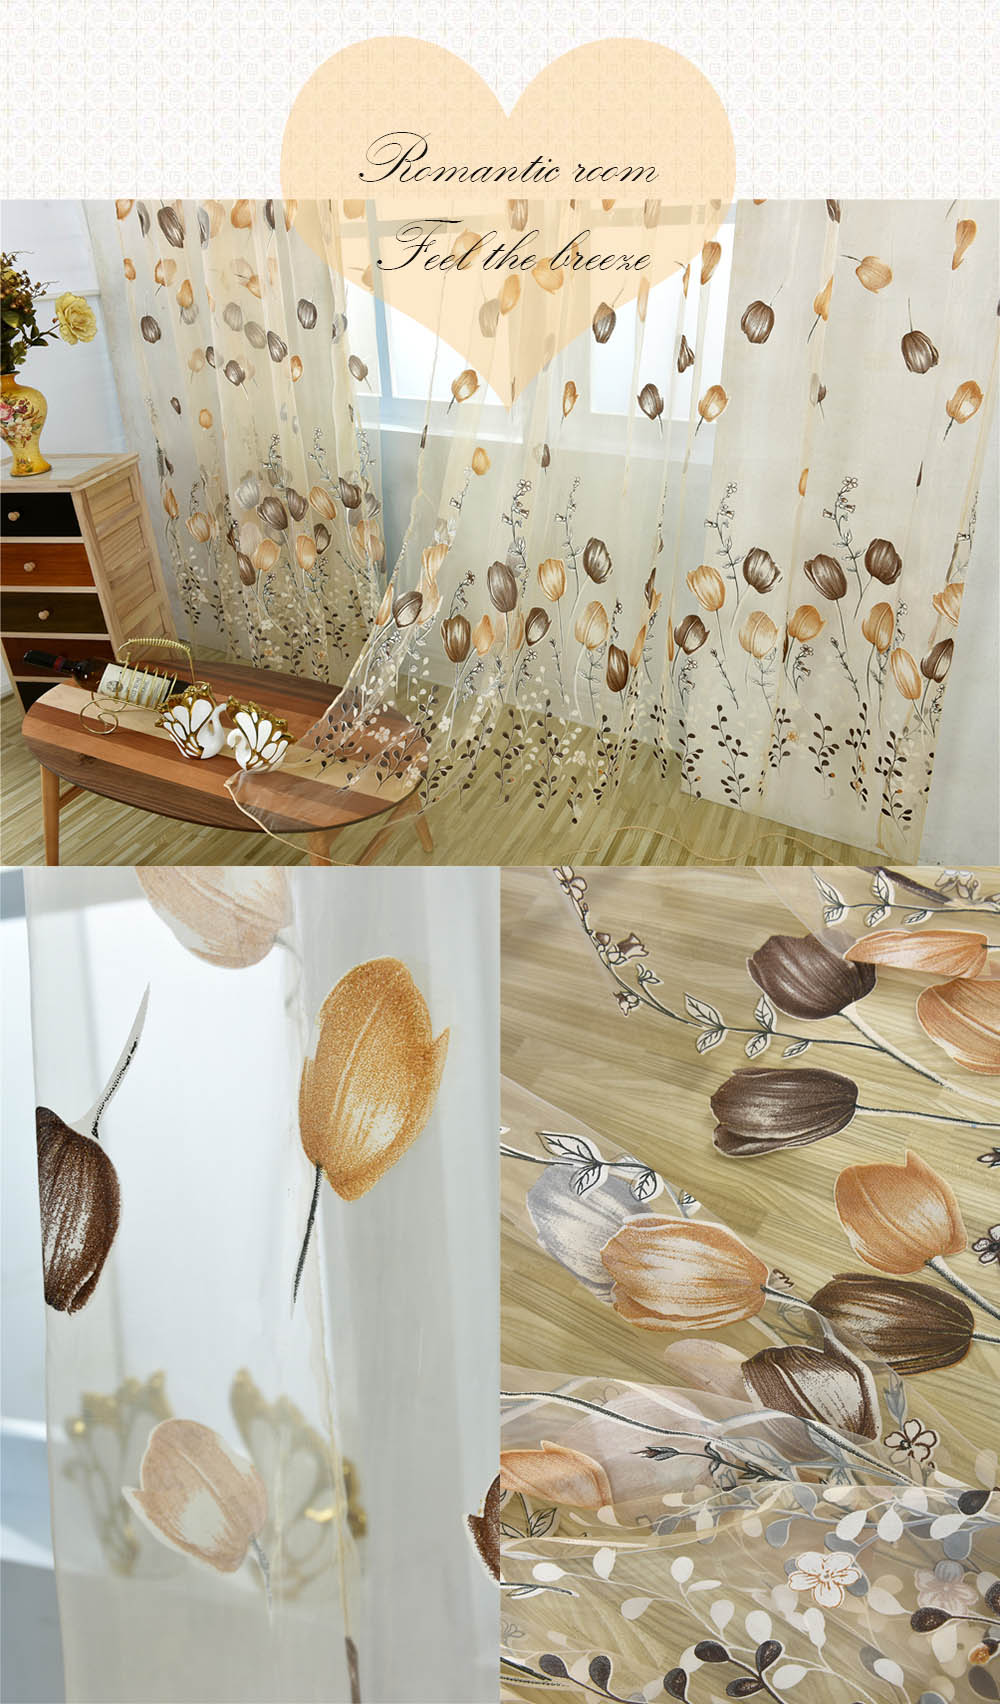 100 x 200cm Chiffon Gauze Voile Wall Room Divider Tulip Floral Printed Window Curtain